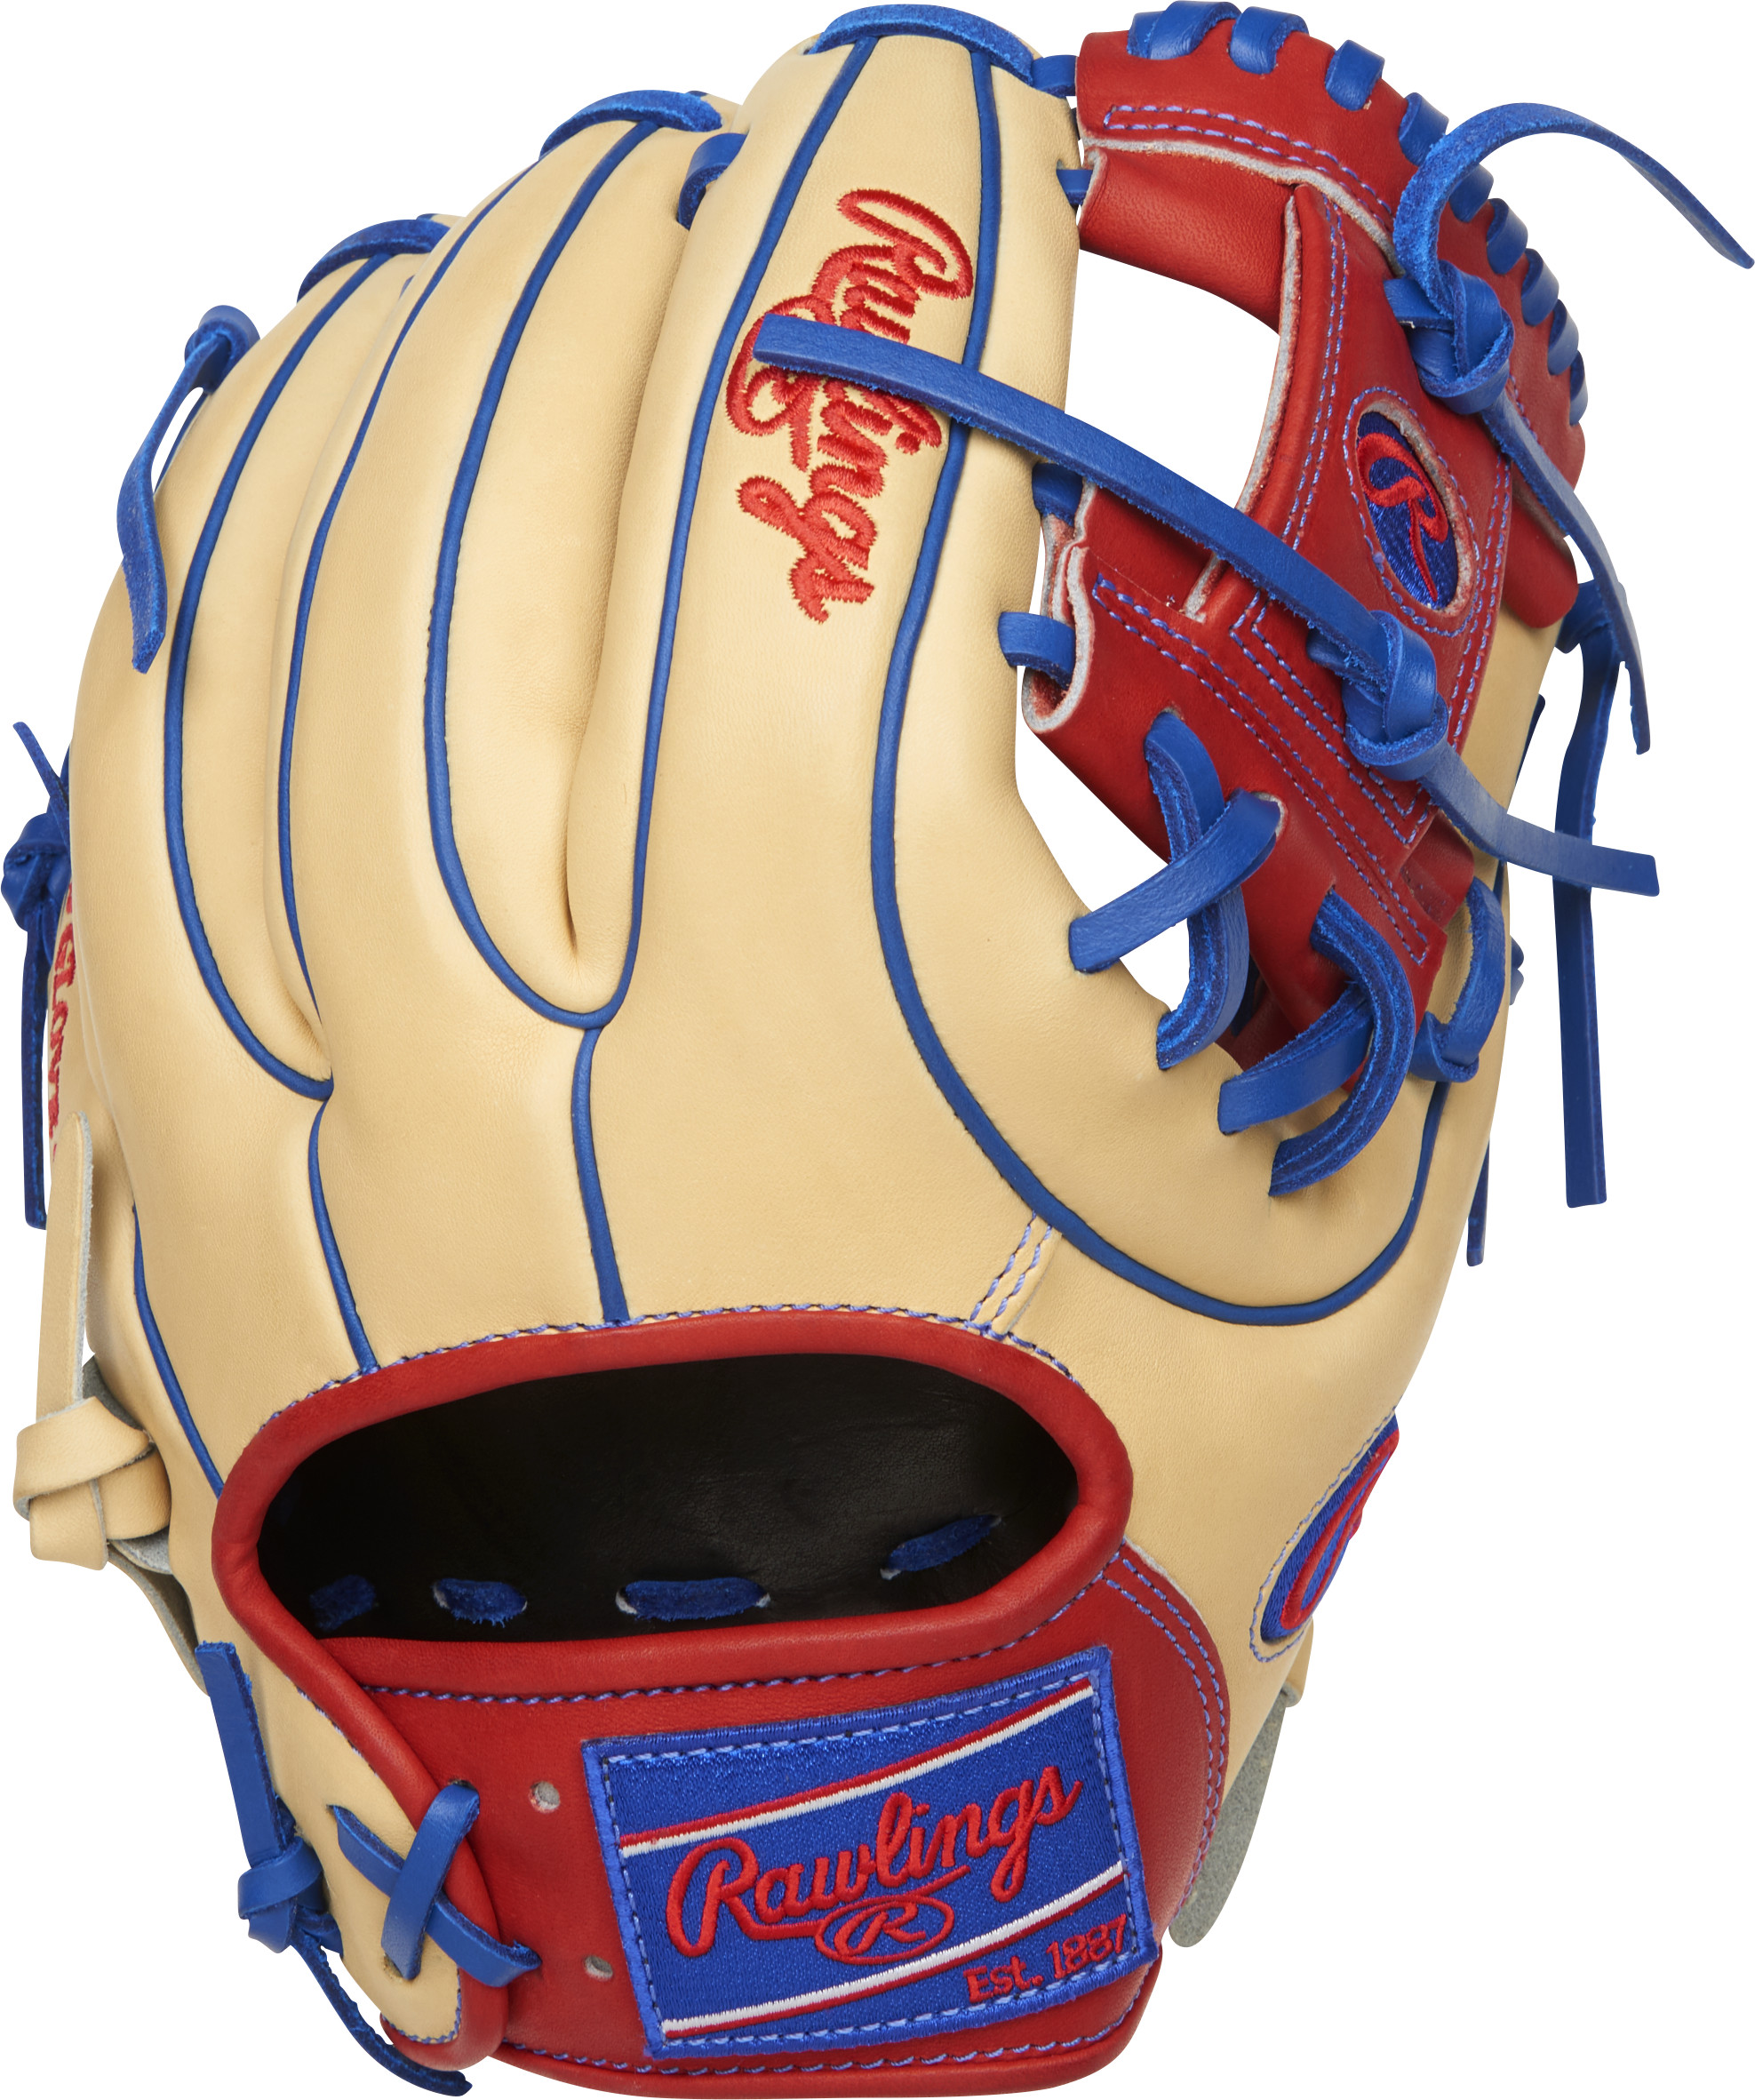 http://www.bestbatdeals.com/images/gloves/rawlings/PRO314-2SCR-2.jpg